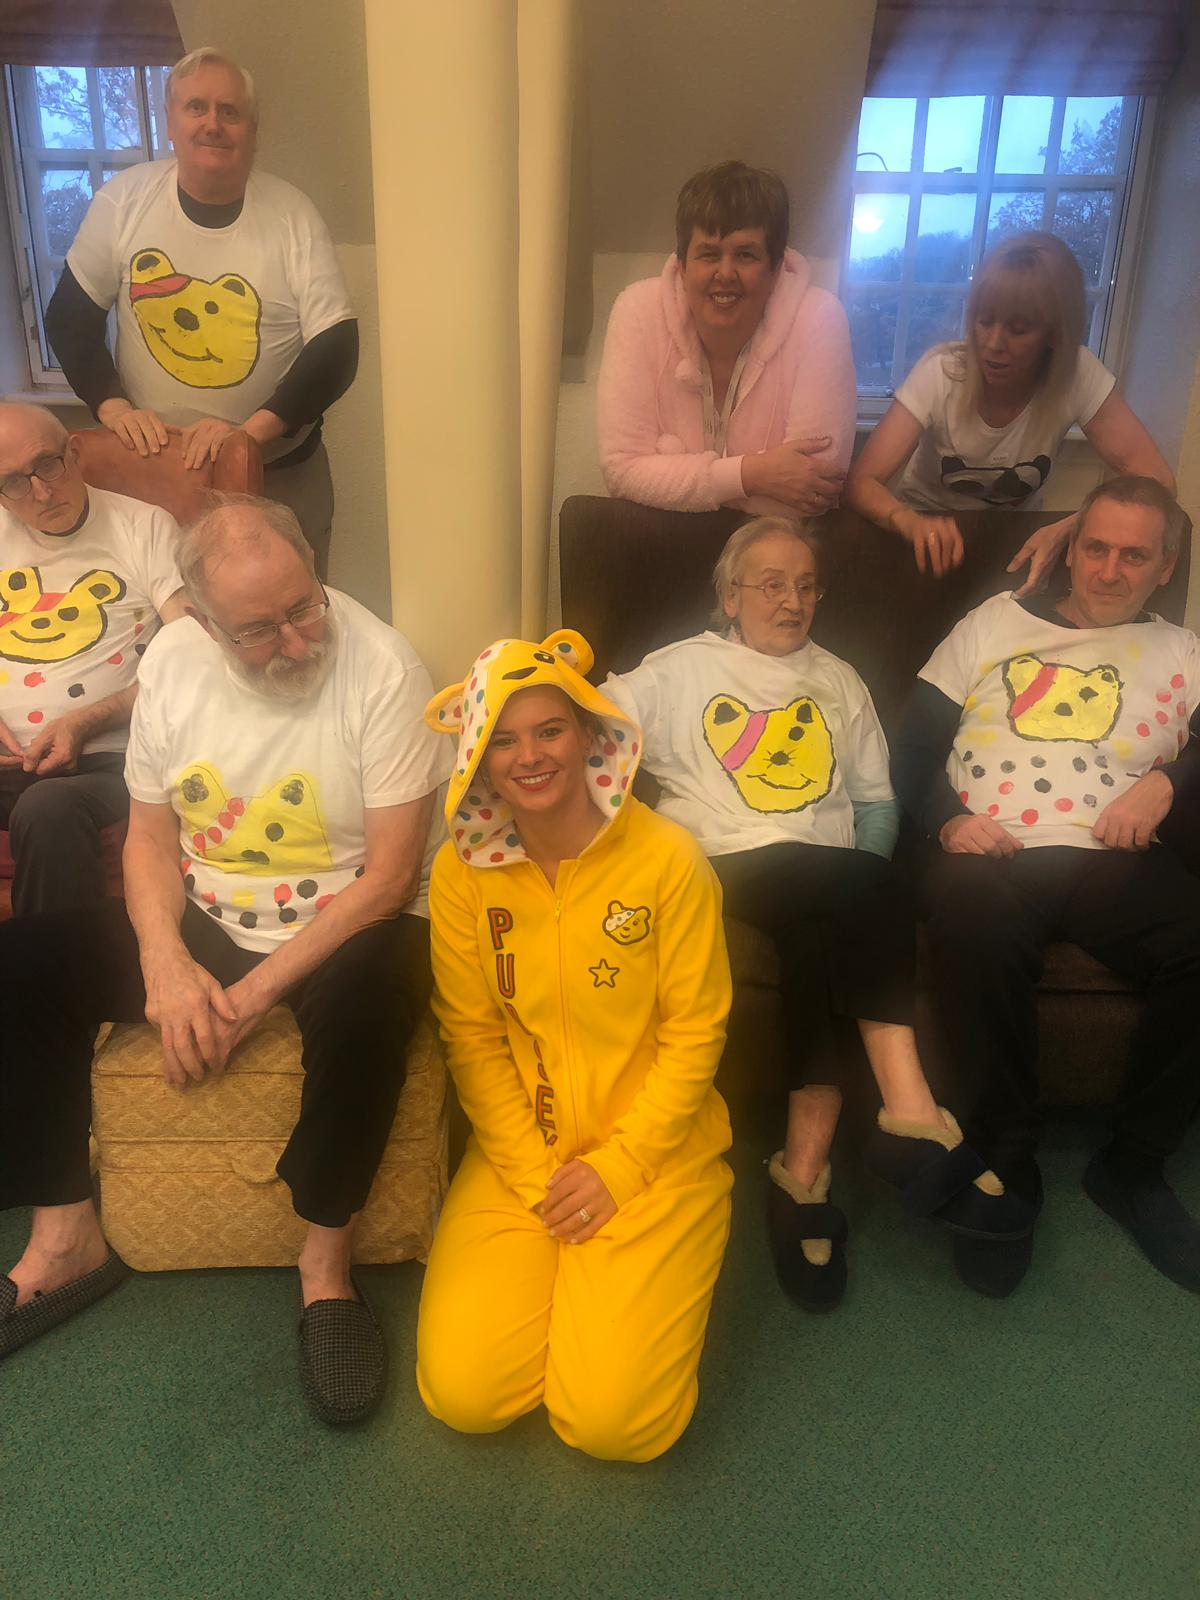 Children In Need 3: Key Healthcare is dedicated to caring for elderly residents in safe. We have multiple dementia care homes including our care home middlesbrough, our care home St. Helen and care home saltburn. We excel in monitoring and improving care levels.